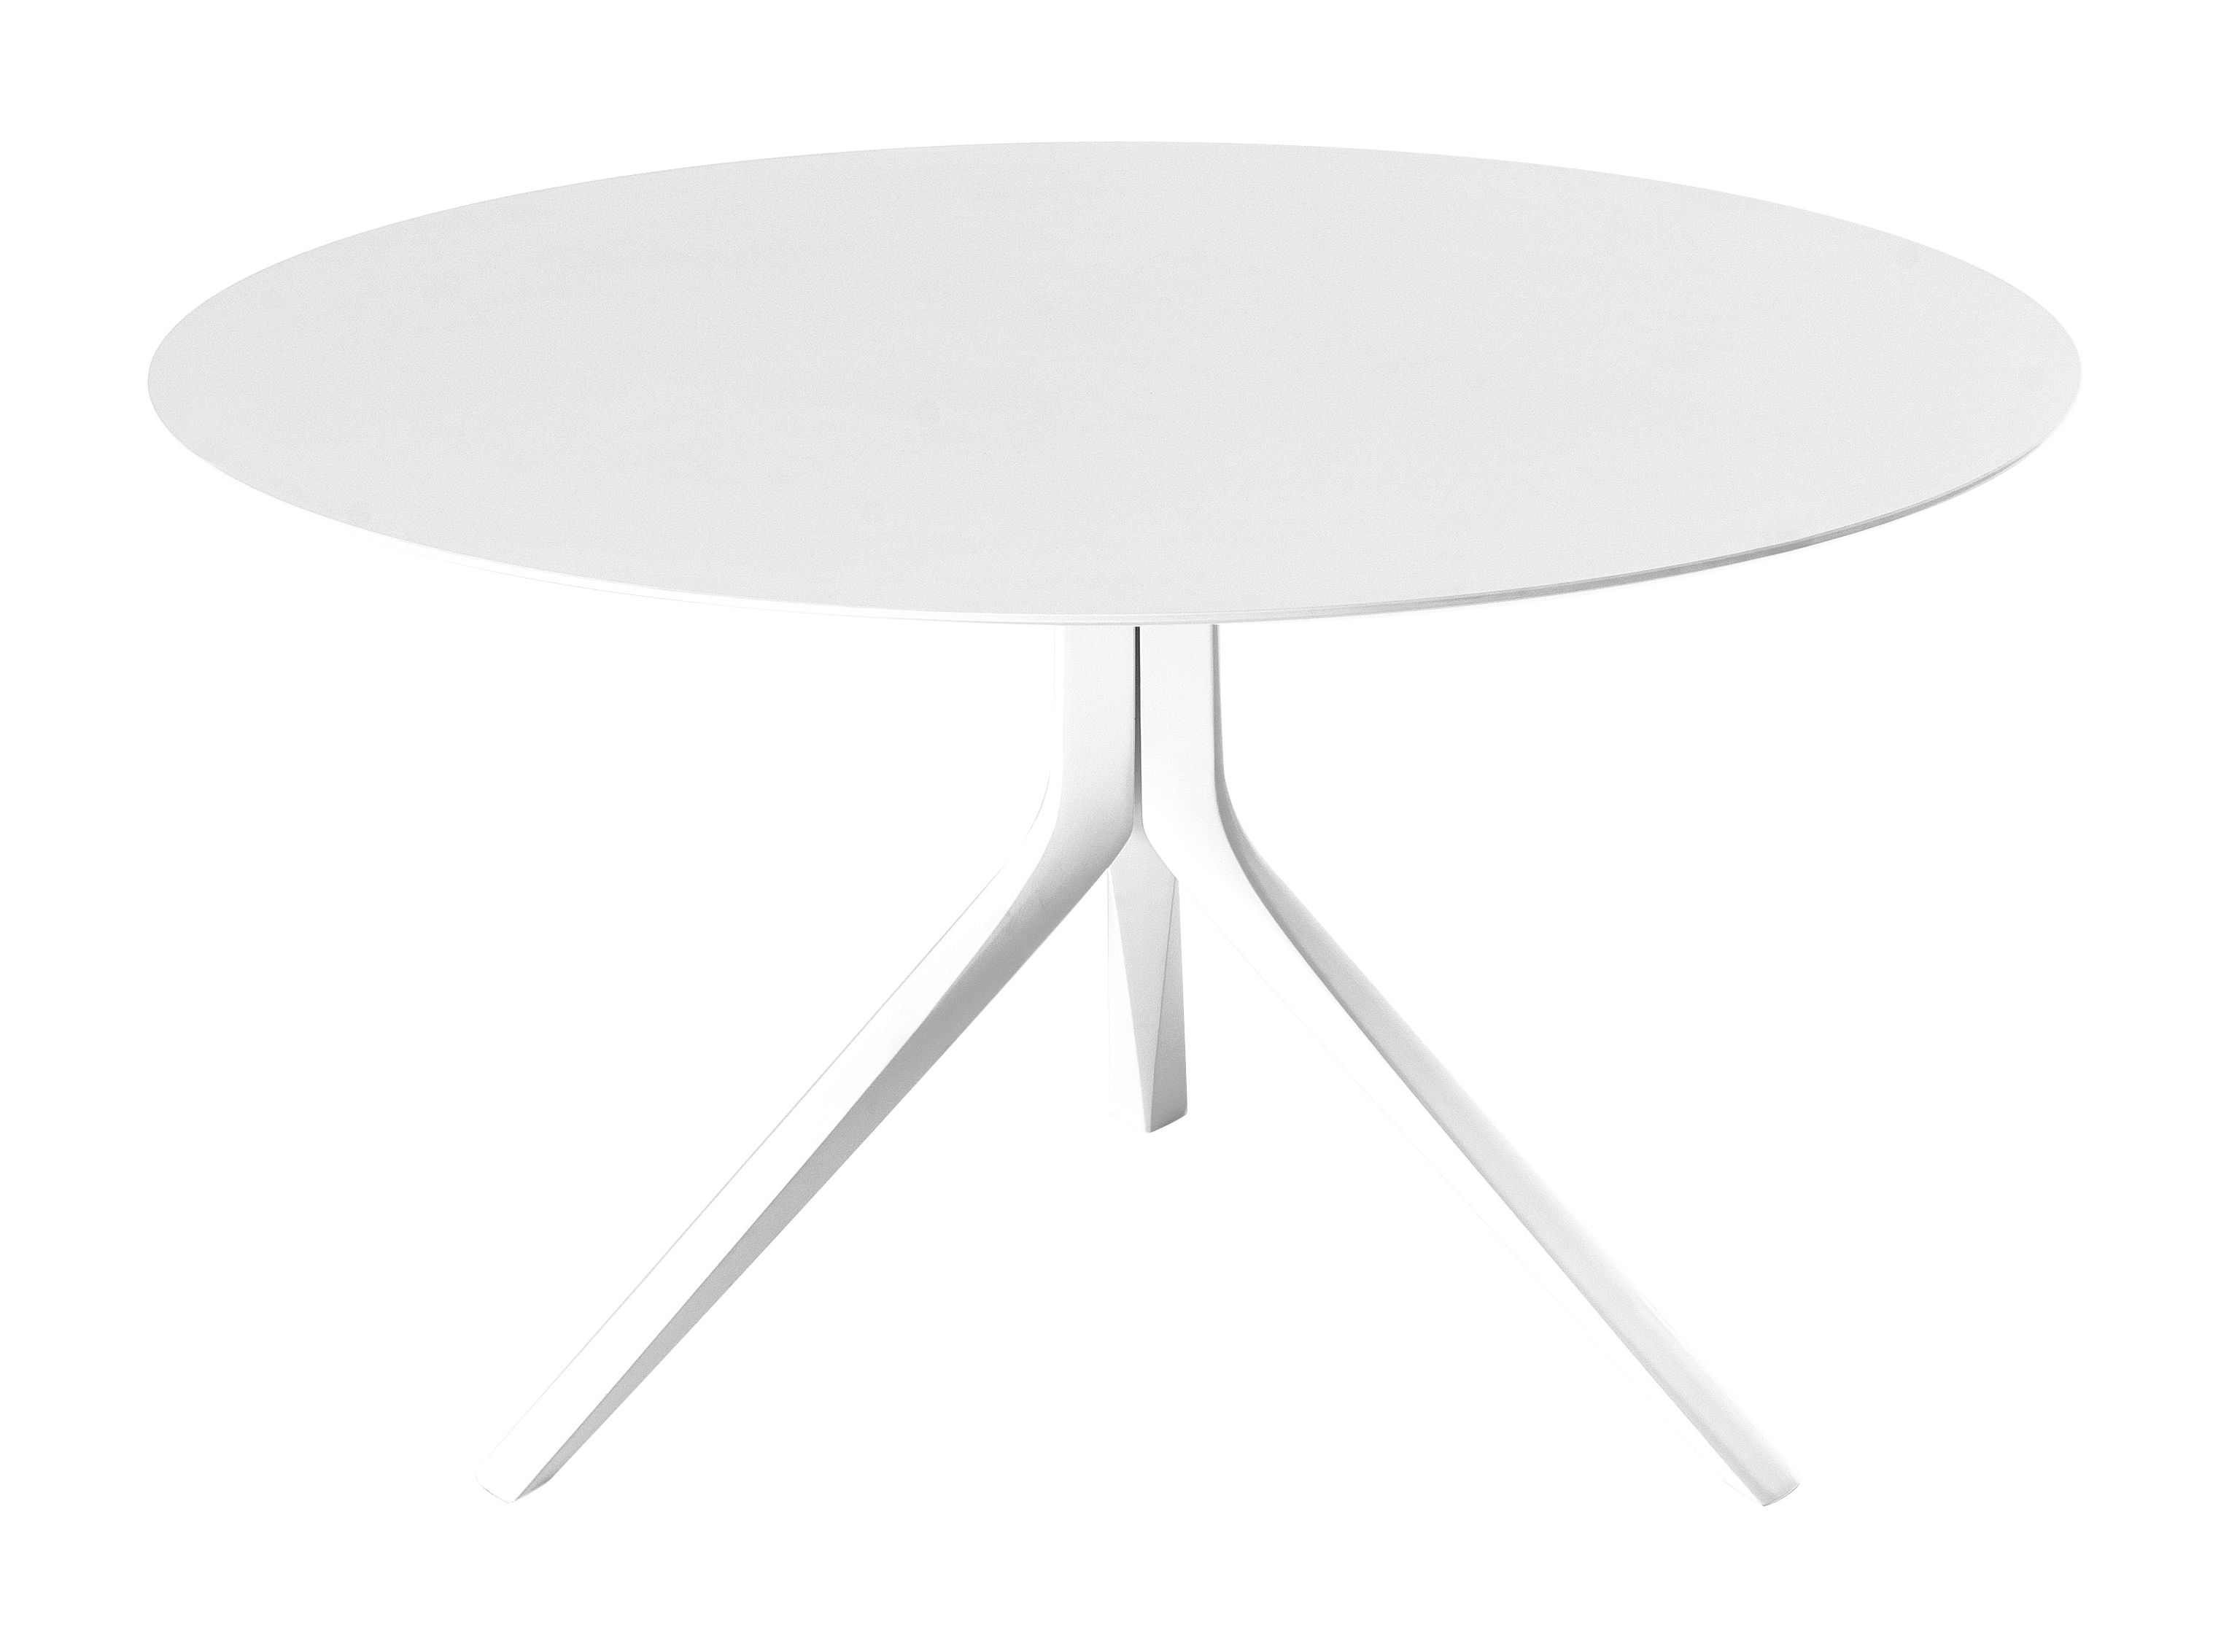 Outdoor - Garden Tables - Oops I did it again Round table - Ø 120 cm by Kristalia - White / White legs - Lacquered aluminium, Stratified